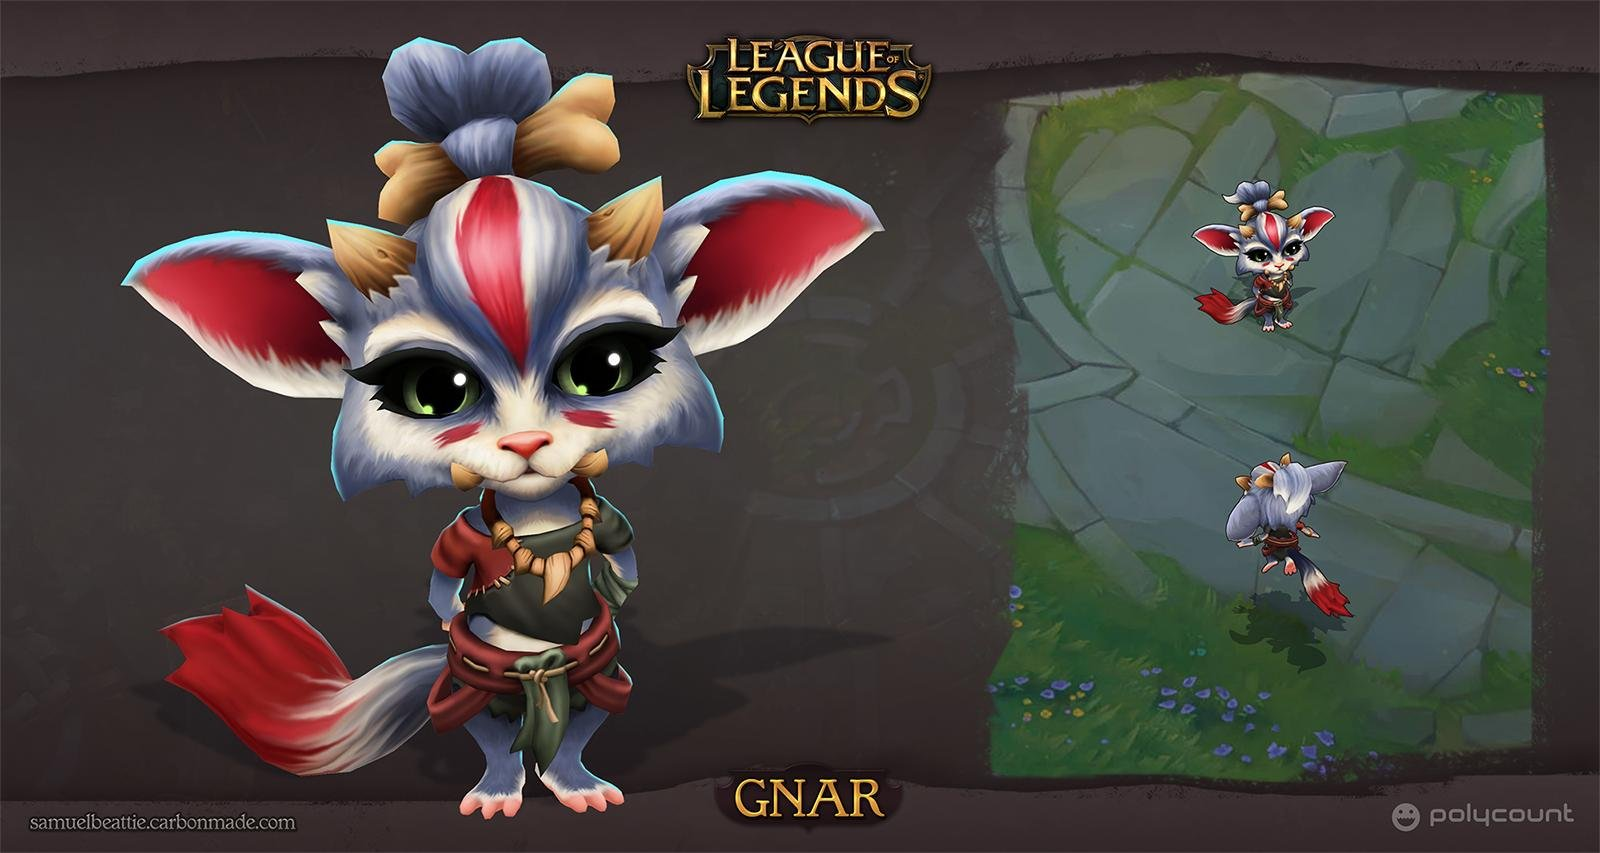 ArtStation - League of Legends - Gnar, Sam Beattie